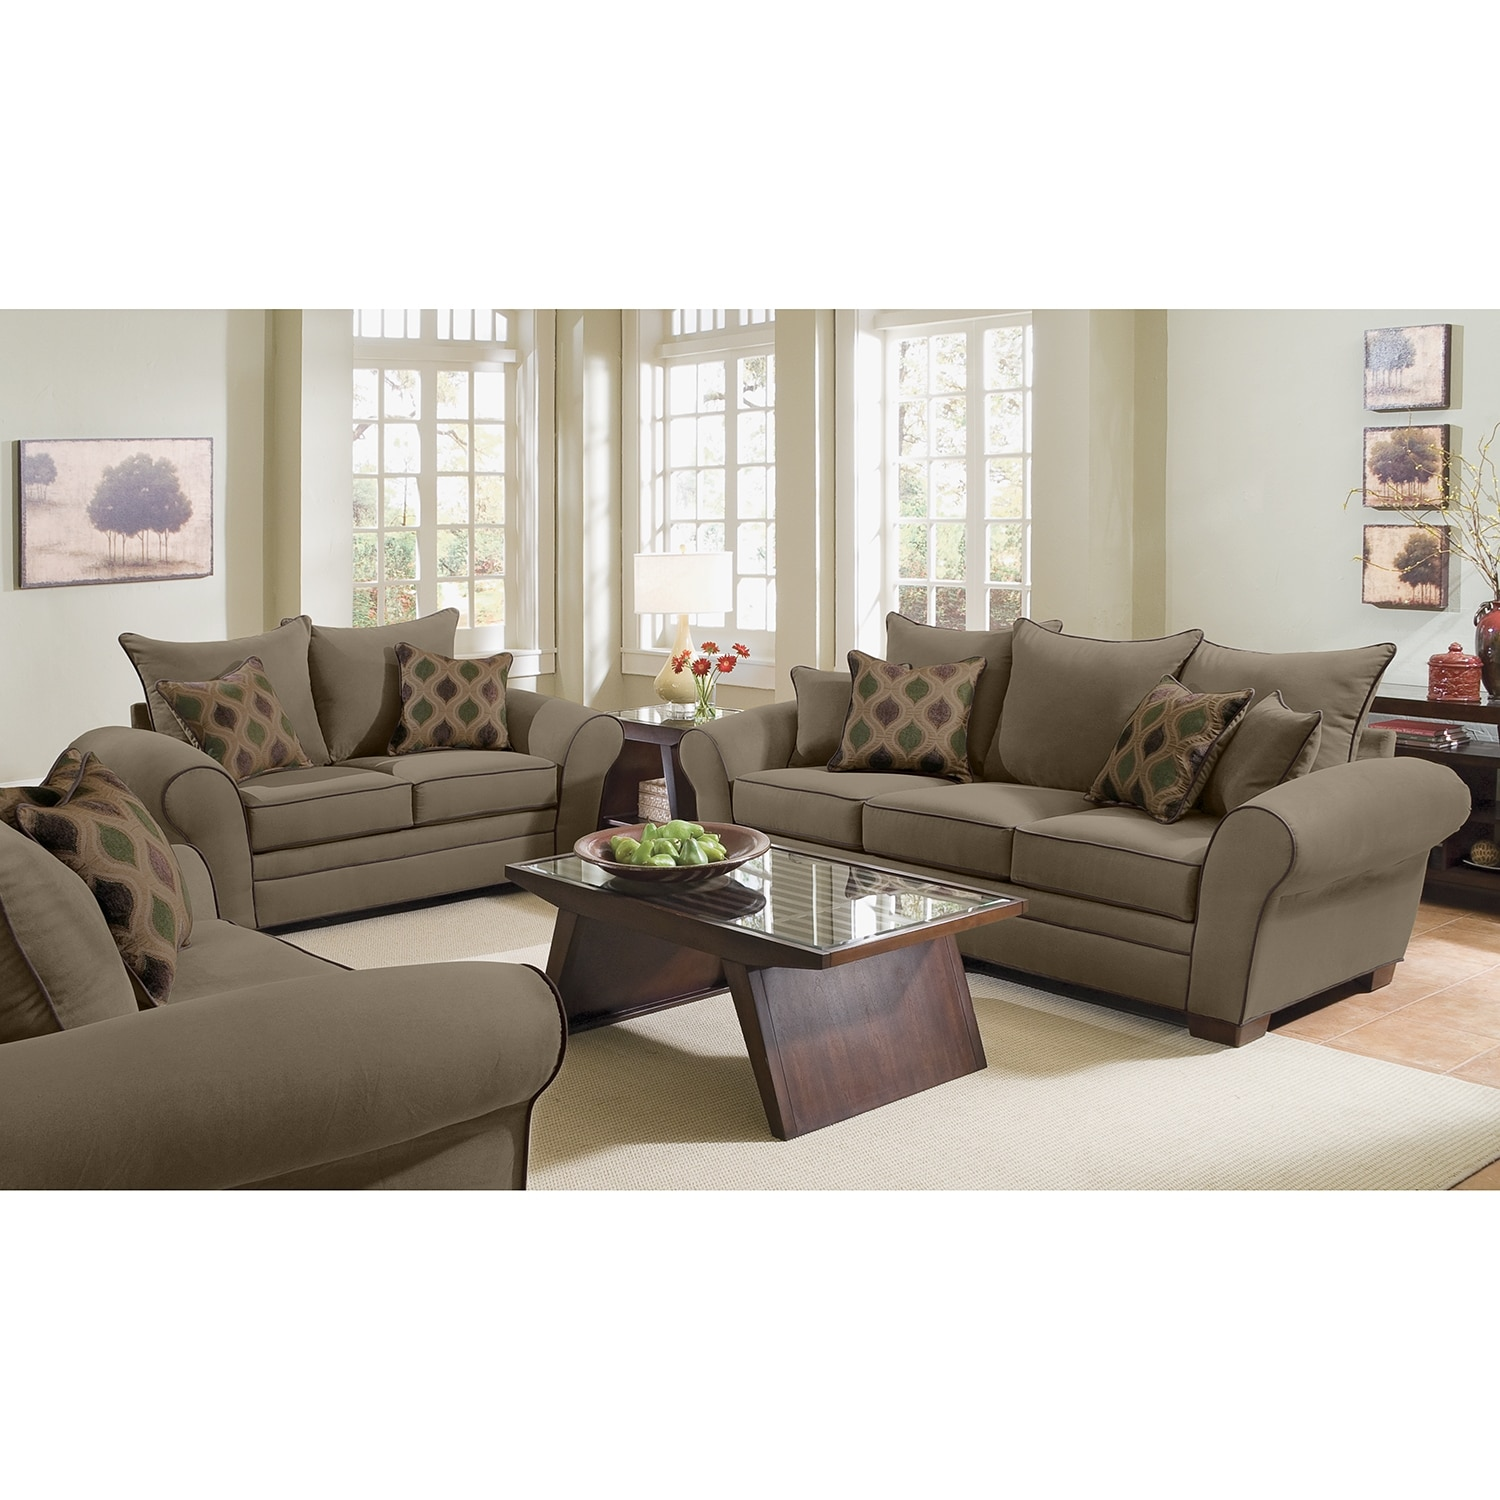 Rendezvous sofa and loveseat set olive value city for Living furniture packages